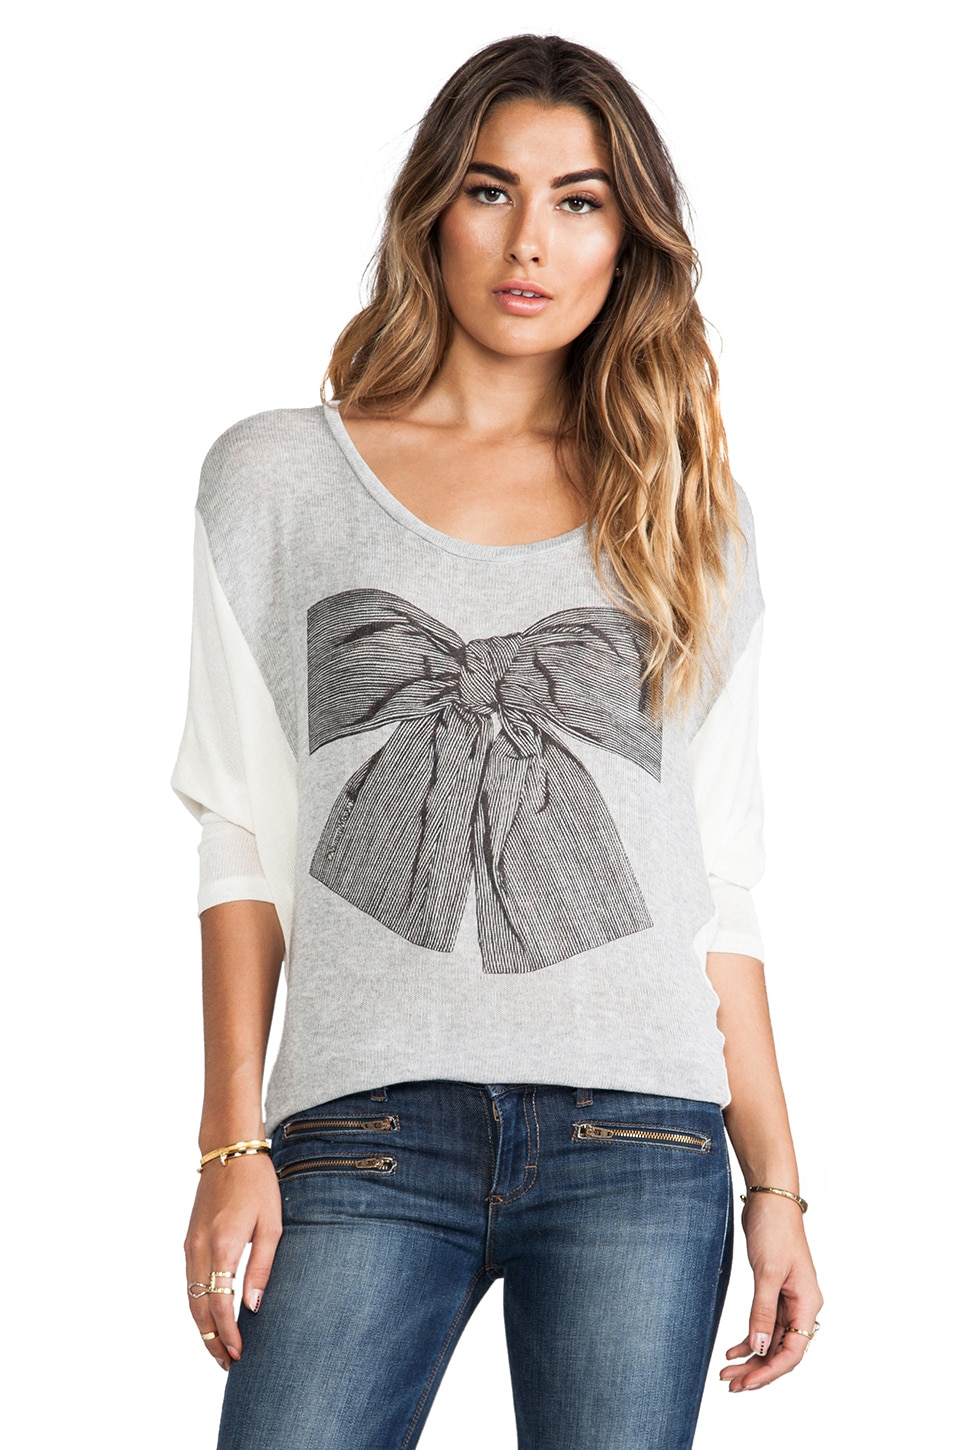 Lauren Moshi Nina Stripe Bow Color Block Sweater in Heather Grey & Natural